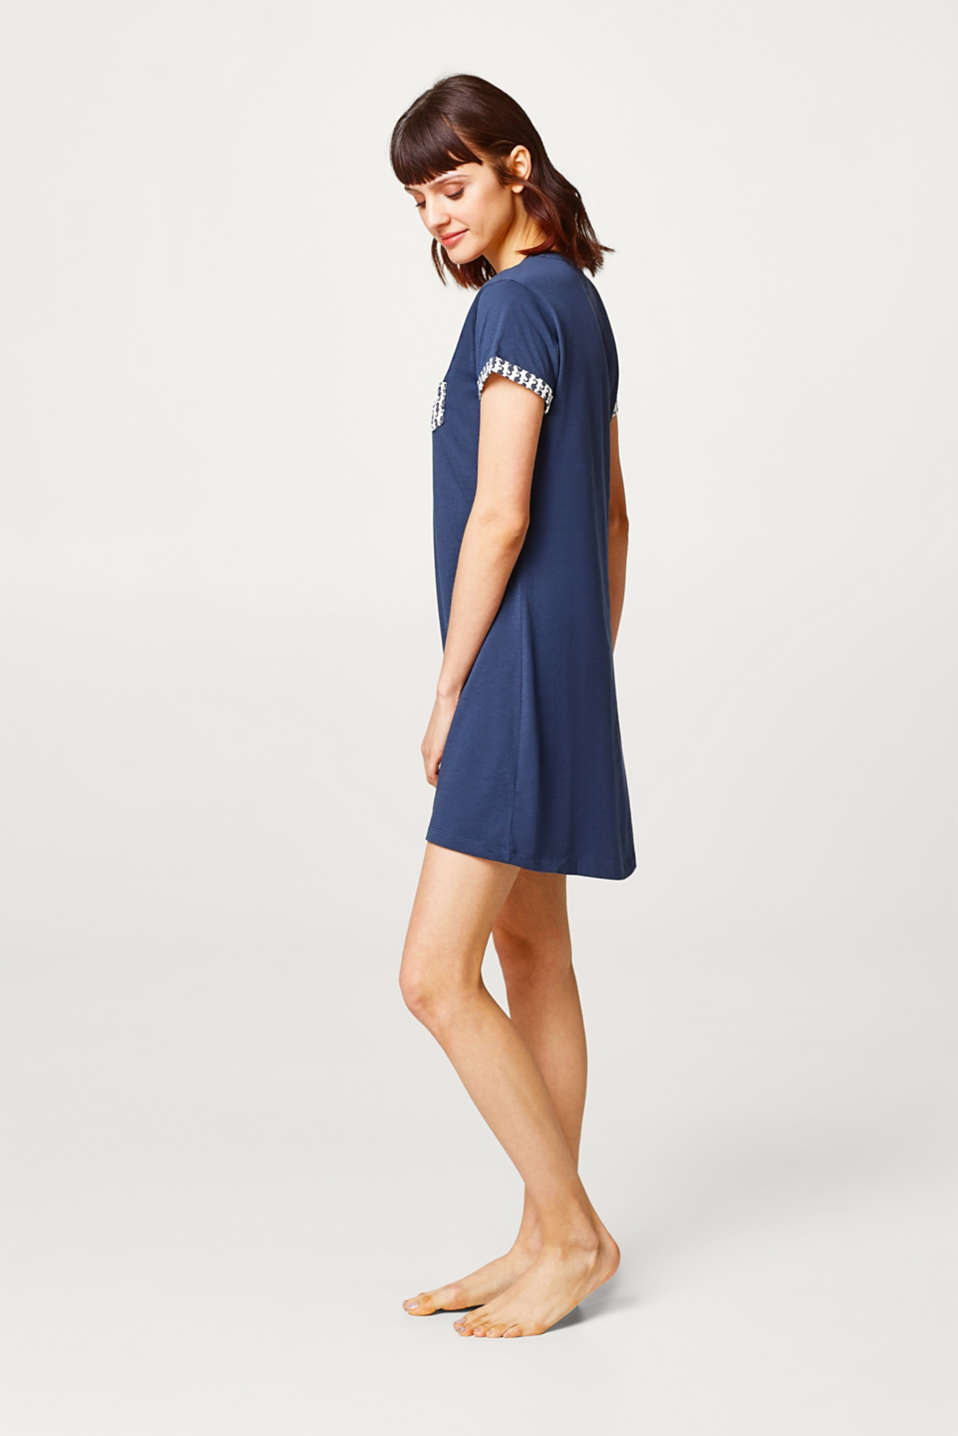 Esprit - Jersey nightdress with print details, 100% cotton